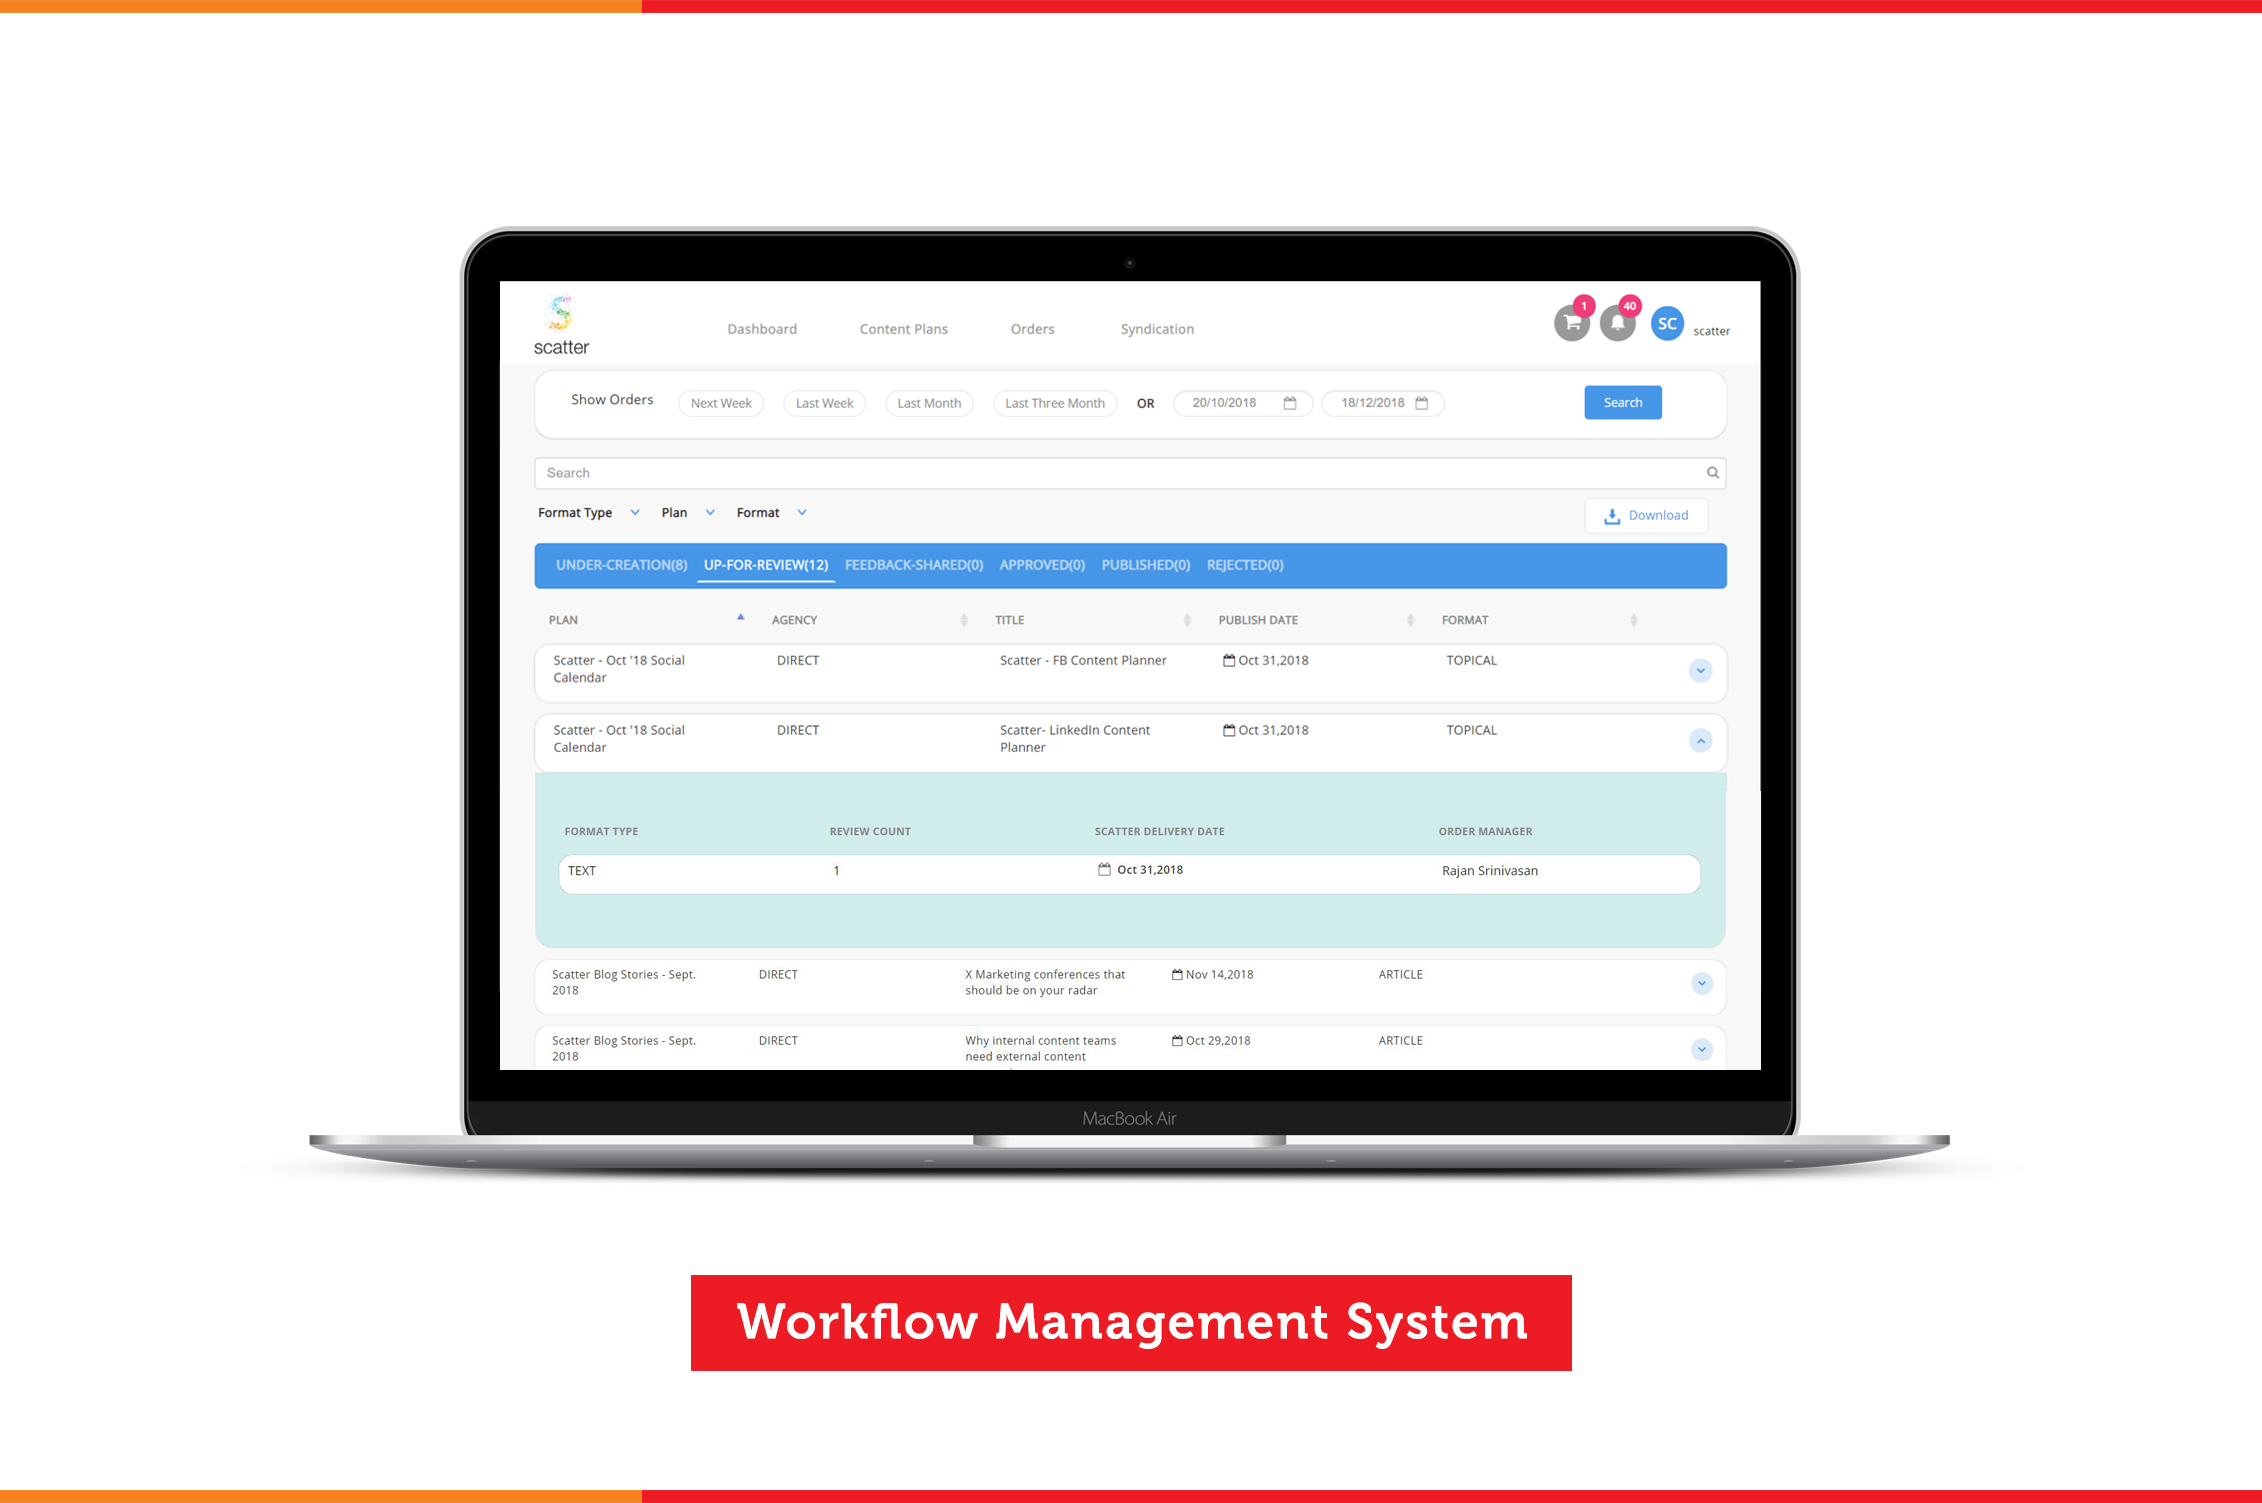 workflow management - open laptop with scatter's workflow management system website open